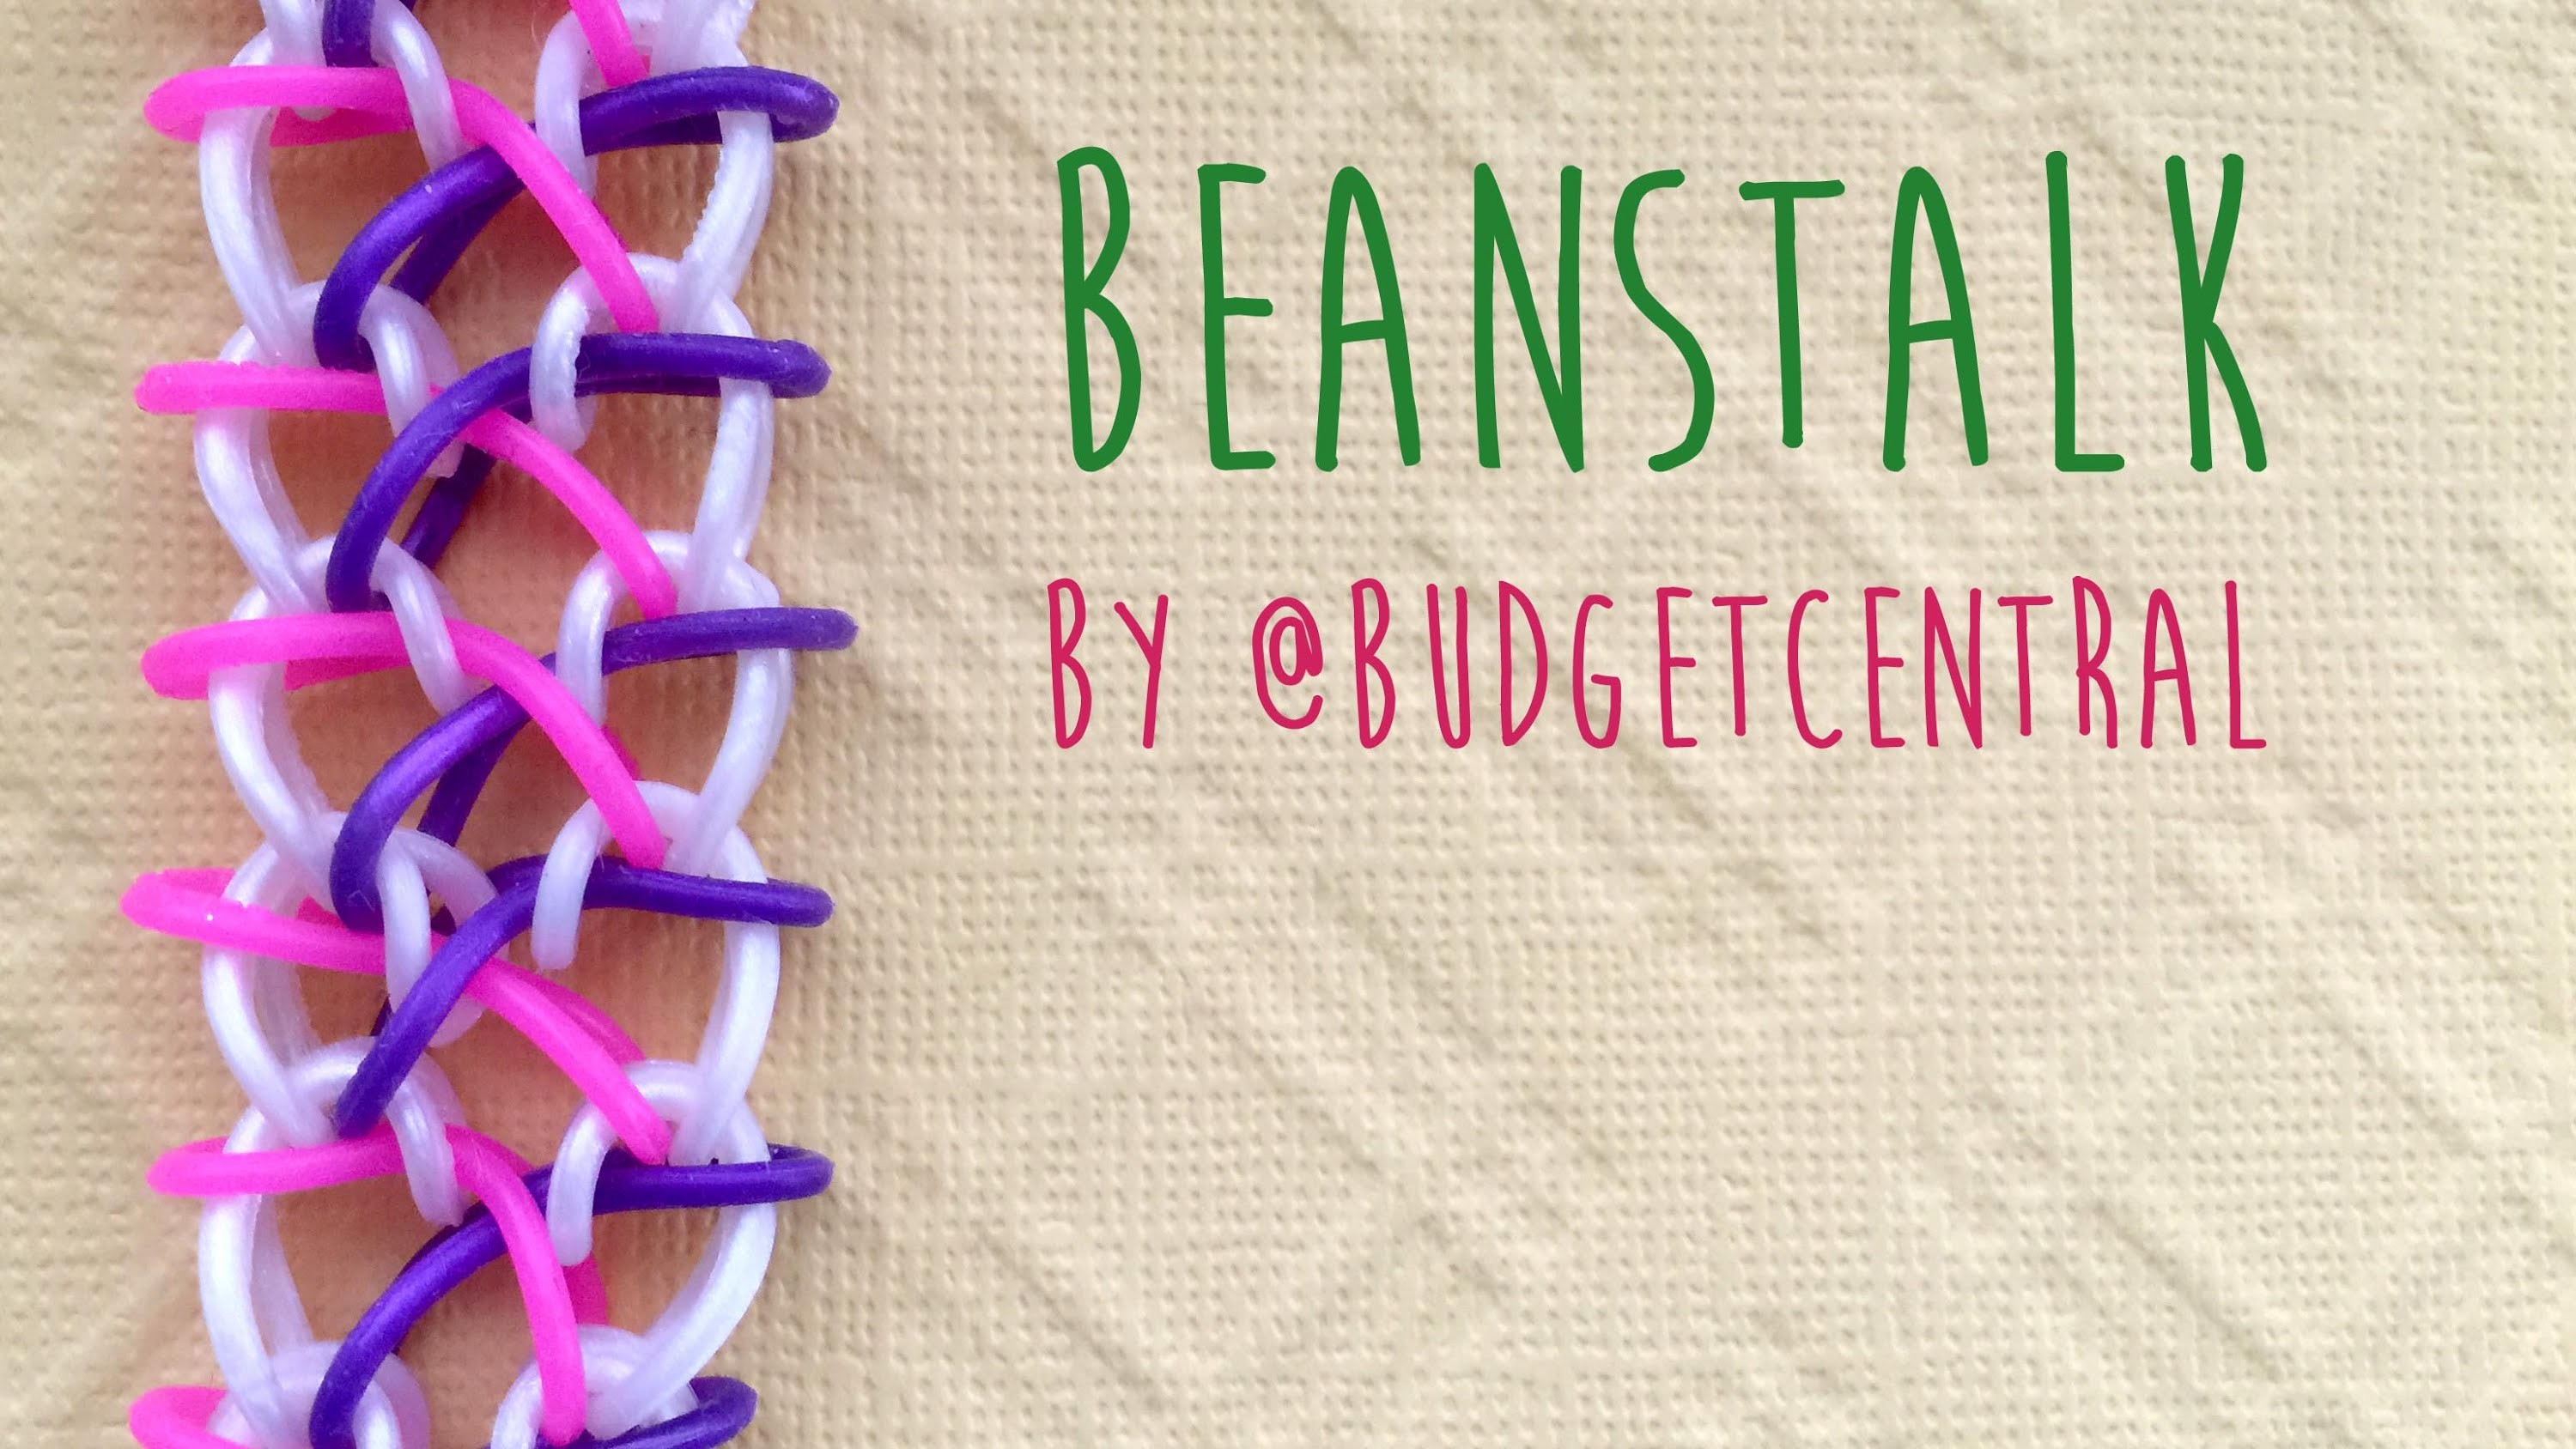 Rainbow Loom Bands Tutorial Beanstalk Bracelet by @BudgetCentral